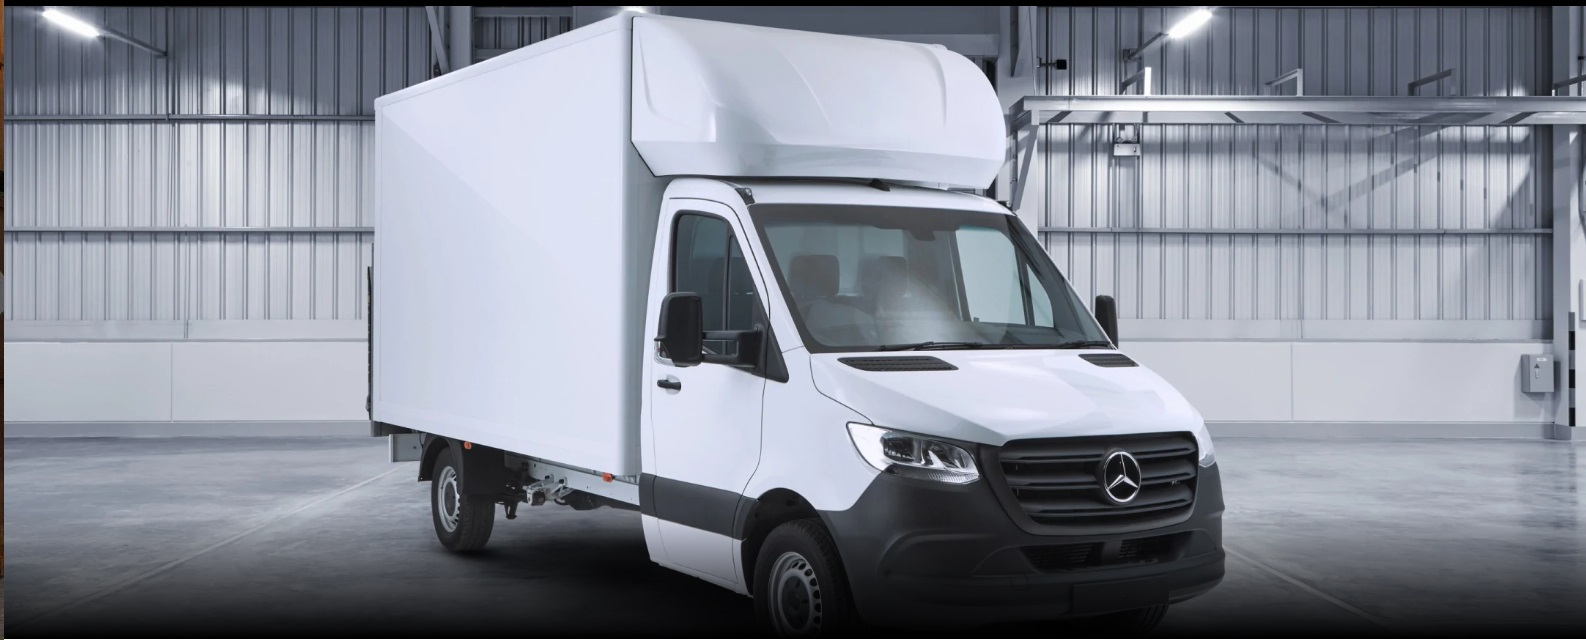 What is a Box Luton Van and how will it help me move house?